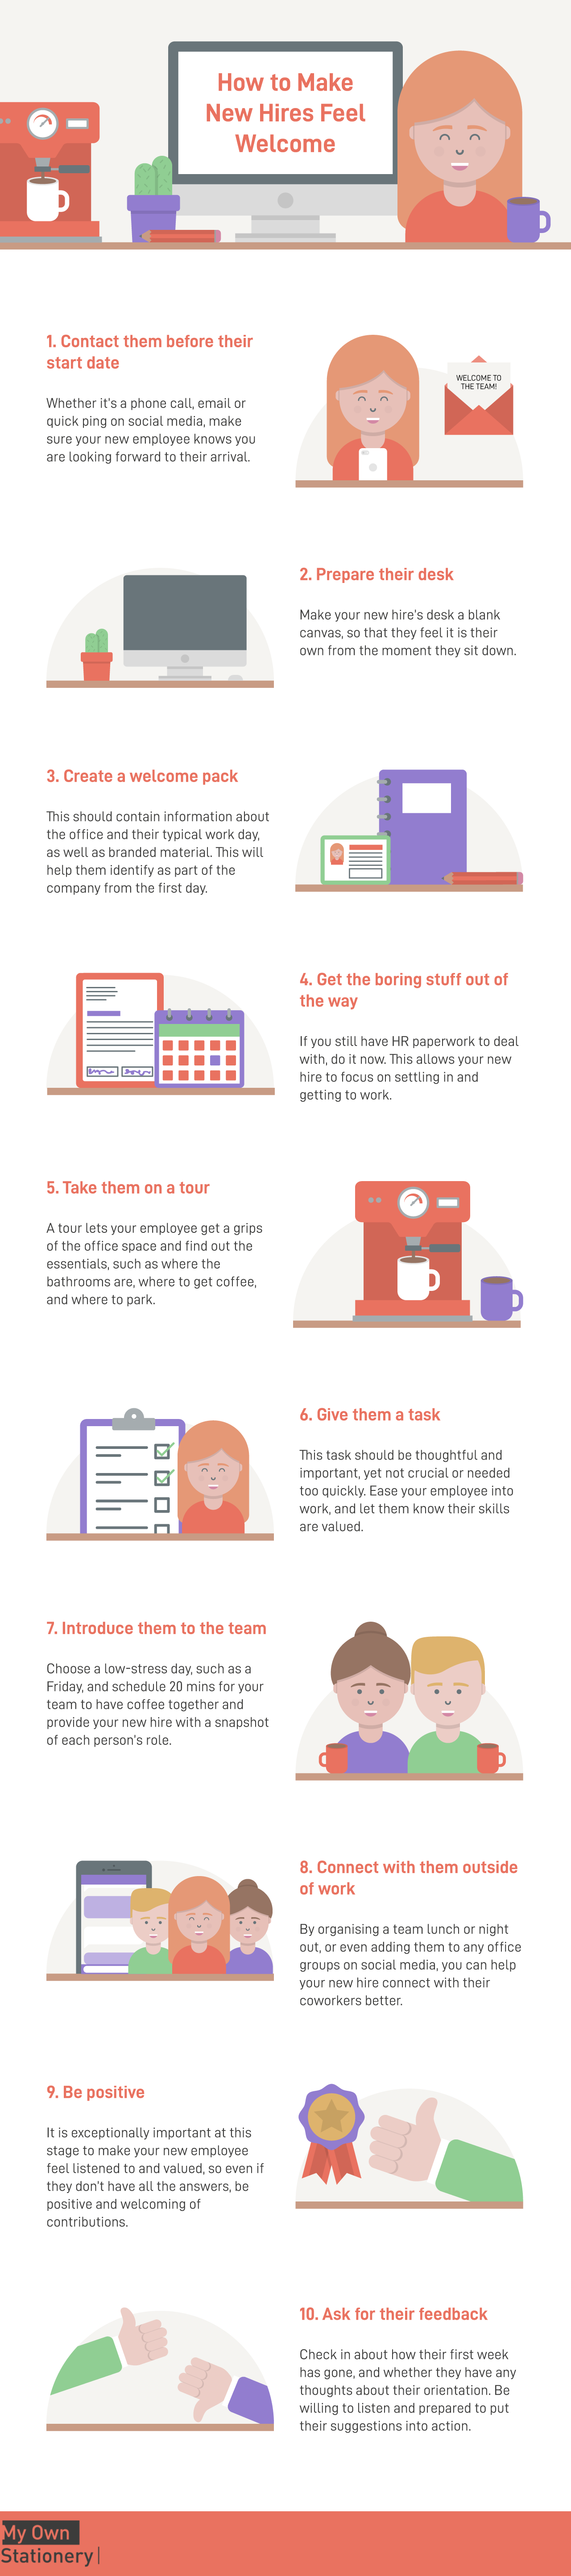 10 ways to make your new hire feel welcome